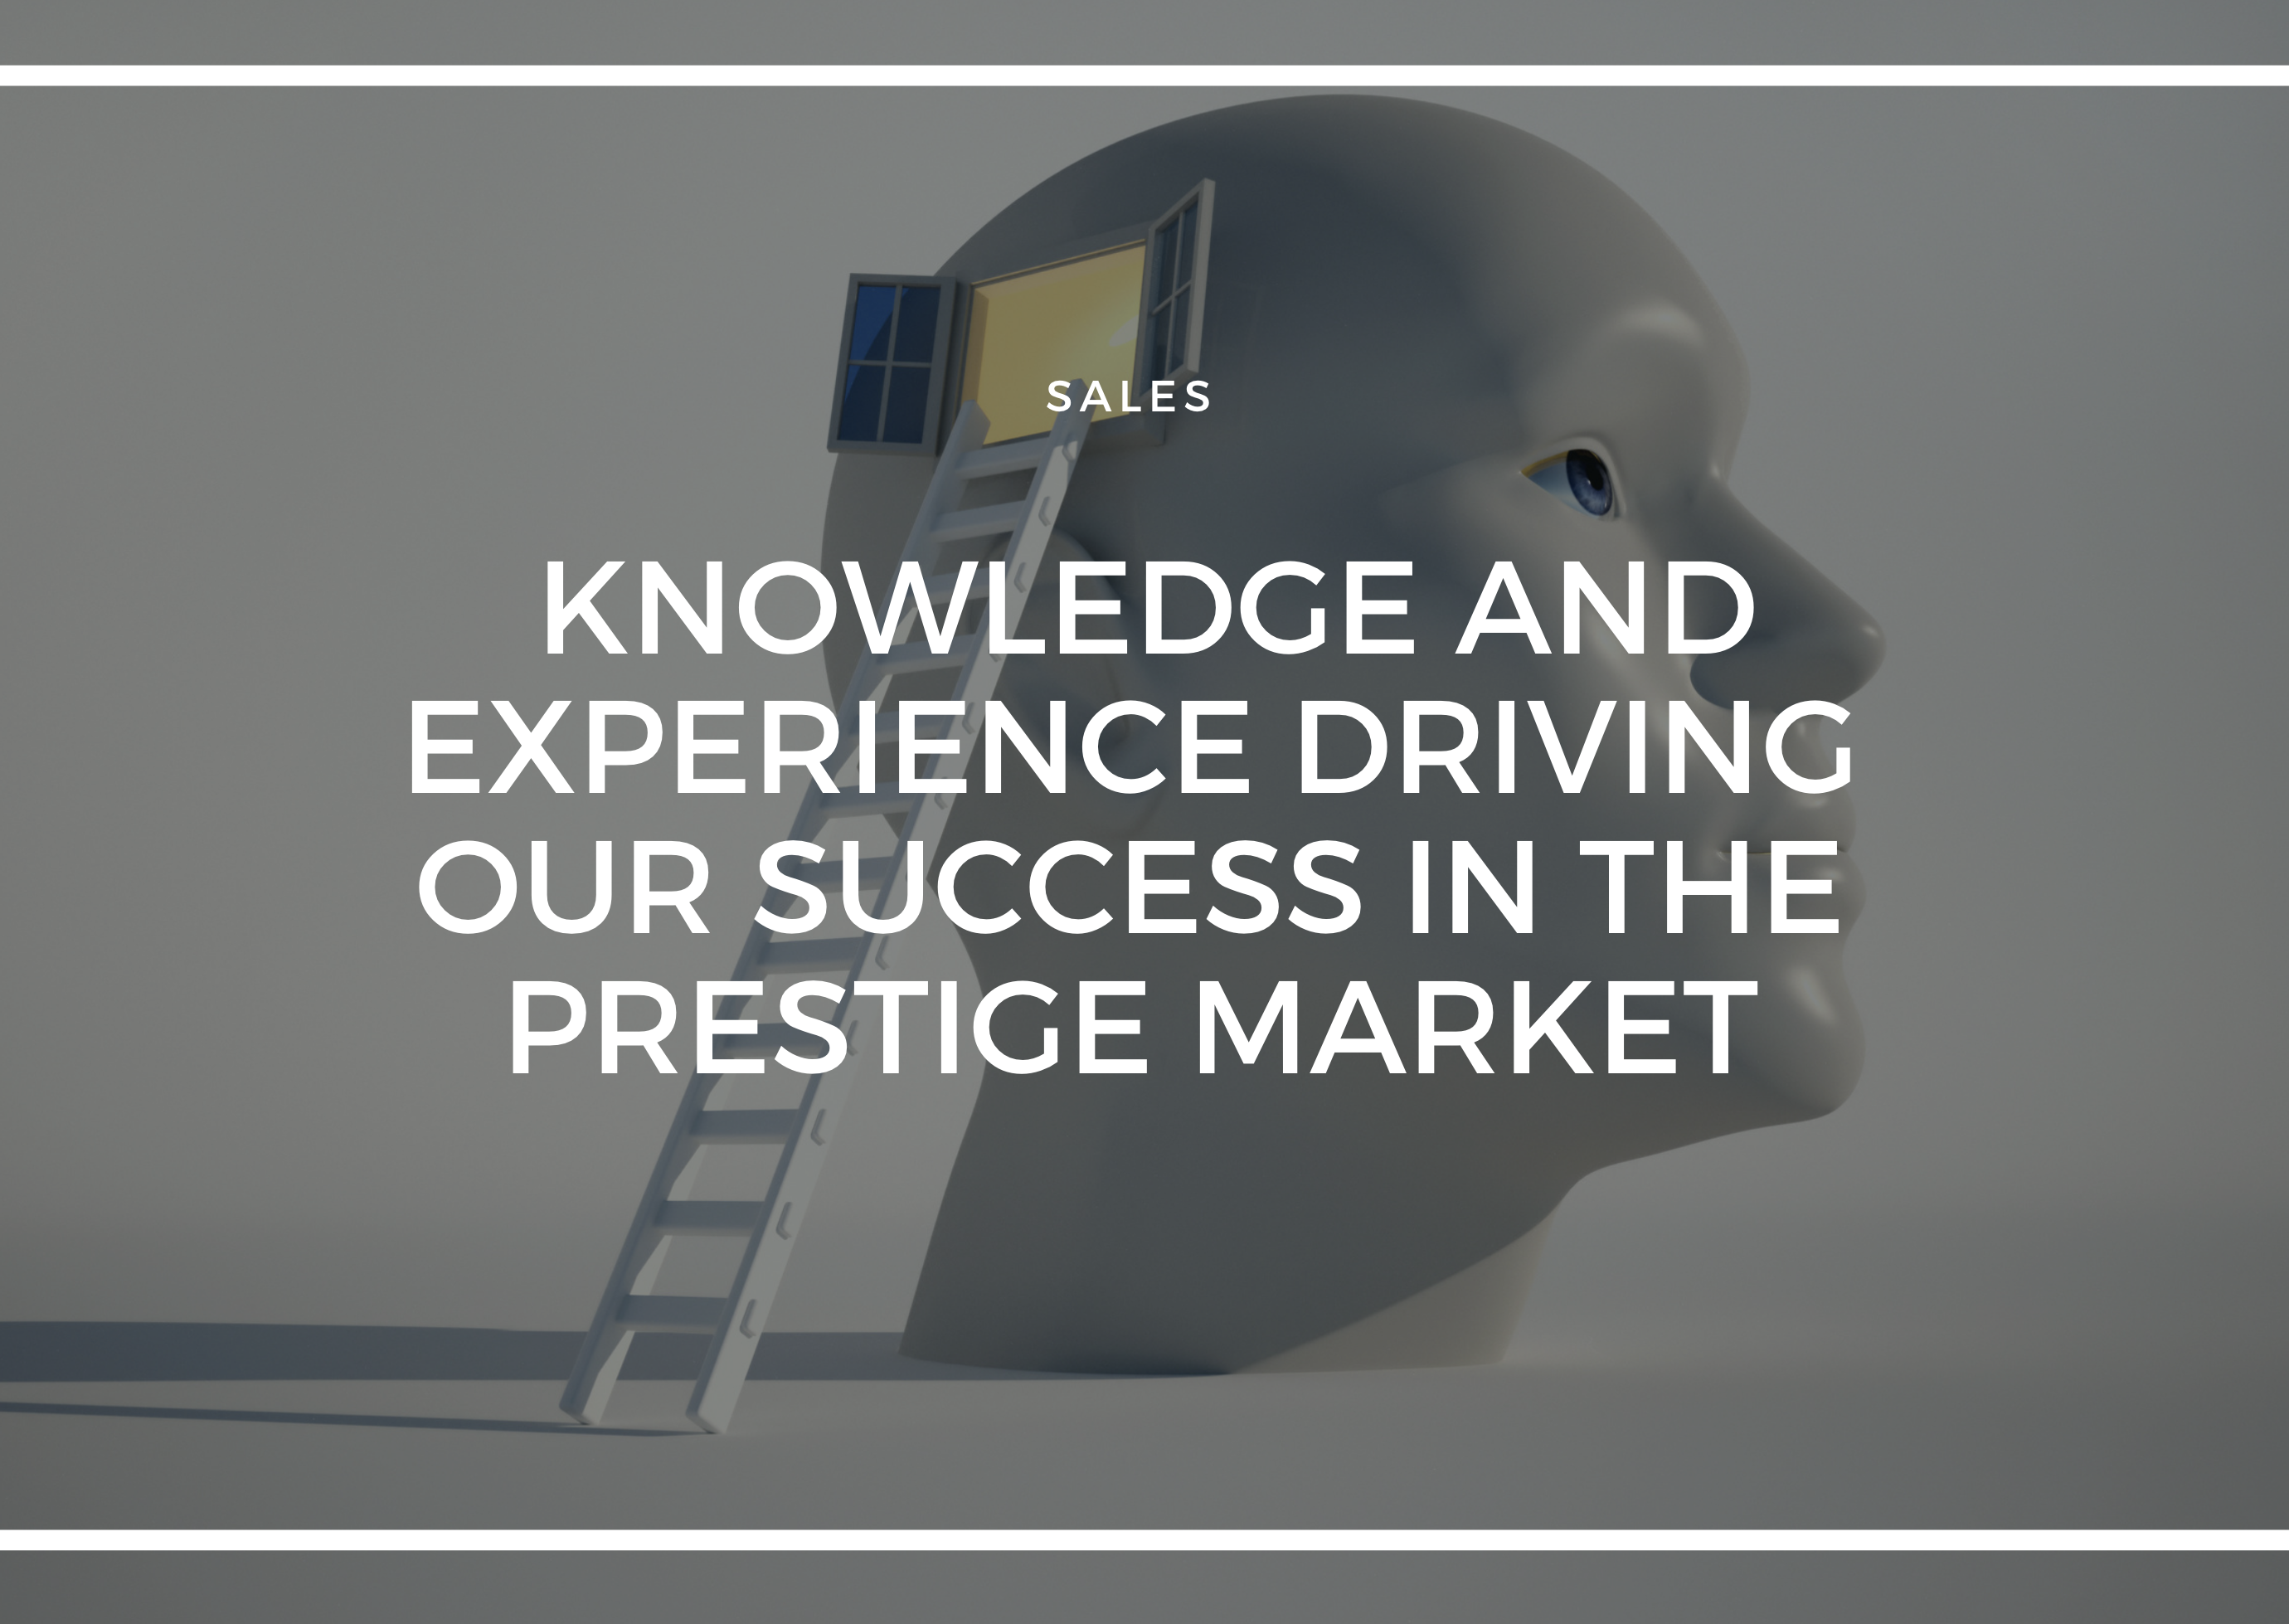 KNOWLEDGE AND EXPERIENCE DRIVING OUR SUCCESS IN THE PRESTIGE MARKET